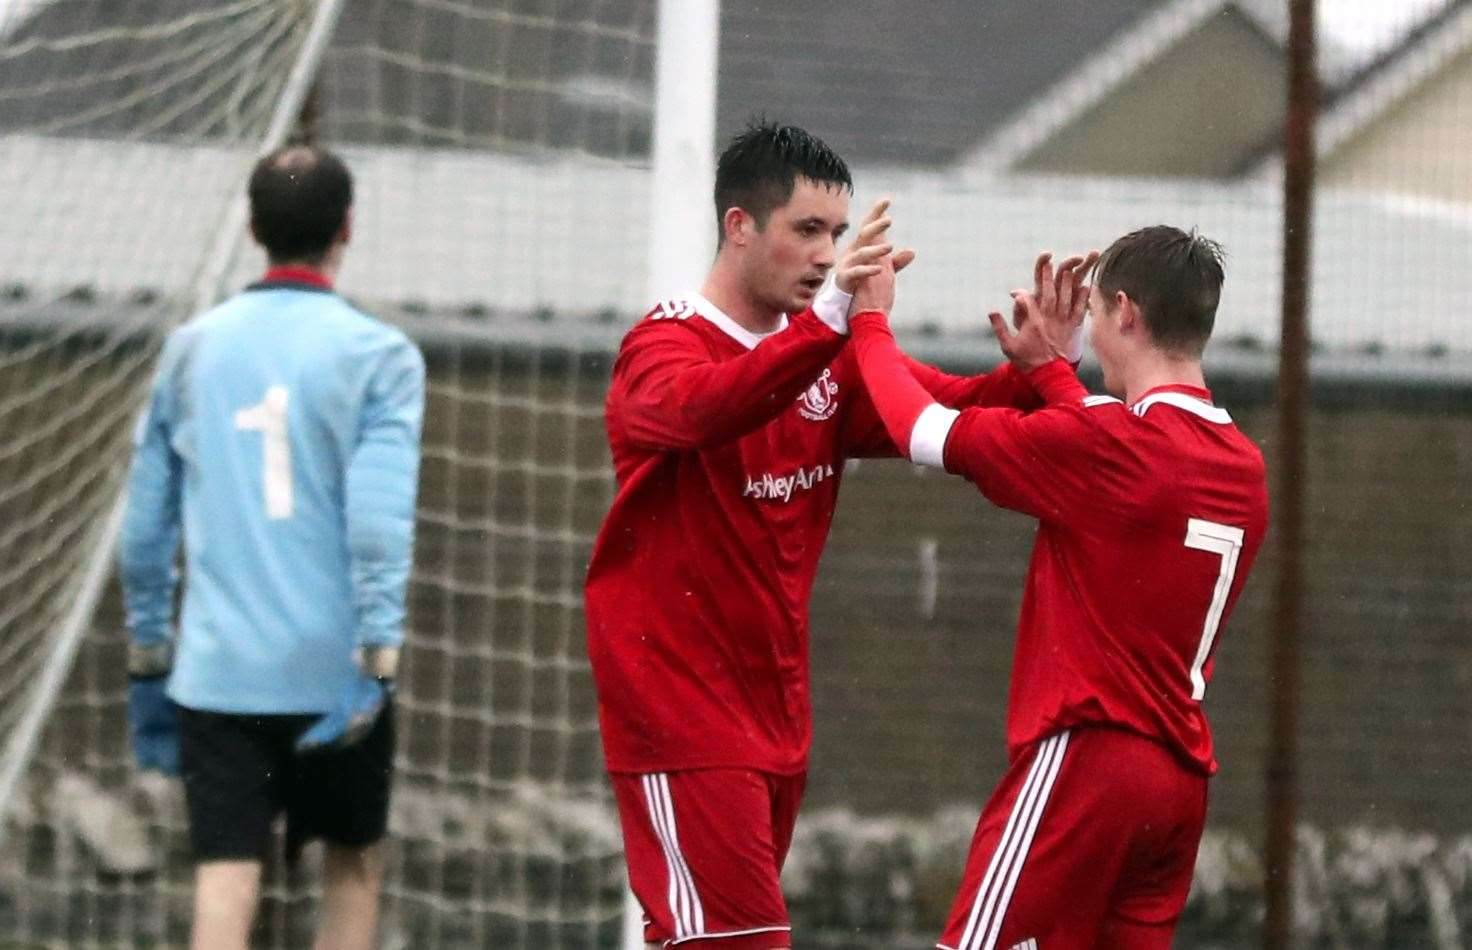 Goal hero Conor Macintosh (left) is congratulated by Cameron Montgomery during Thurso's 6-1 win against Bonar Bridge. Picture: James Gunn